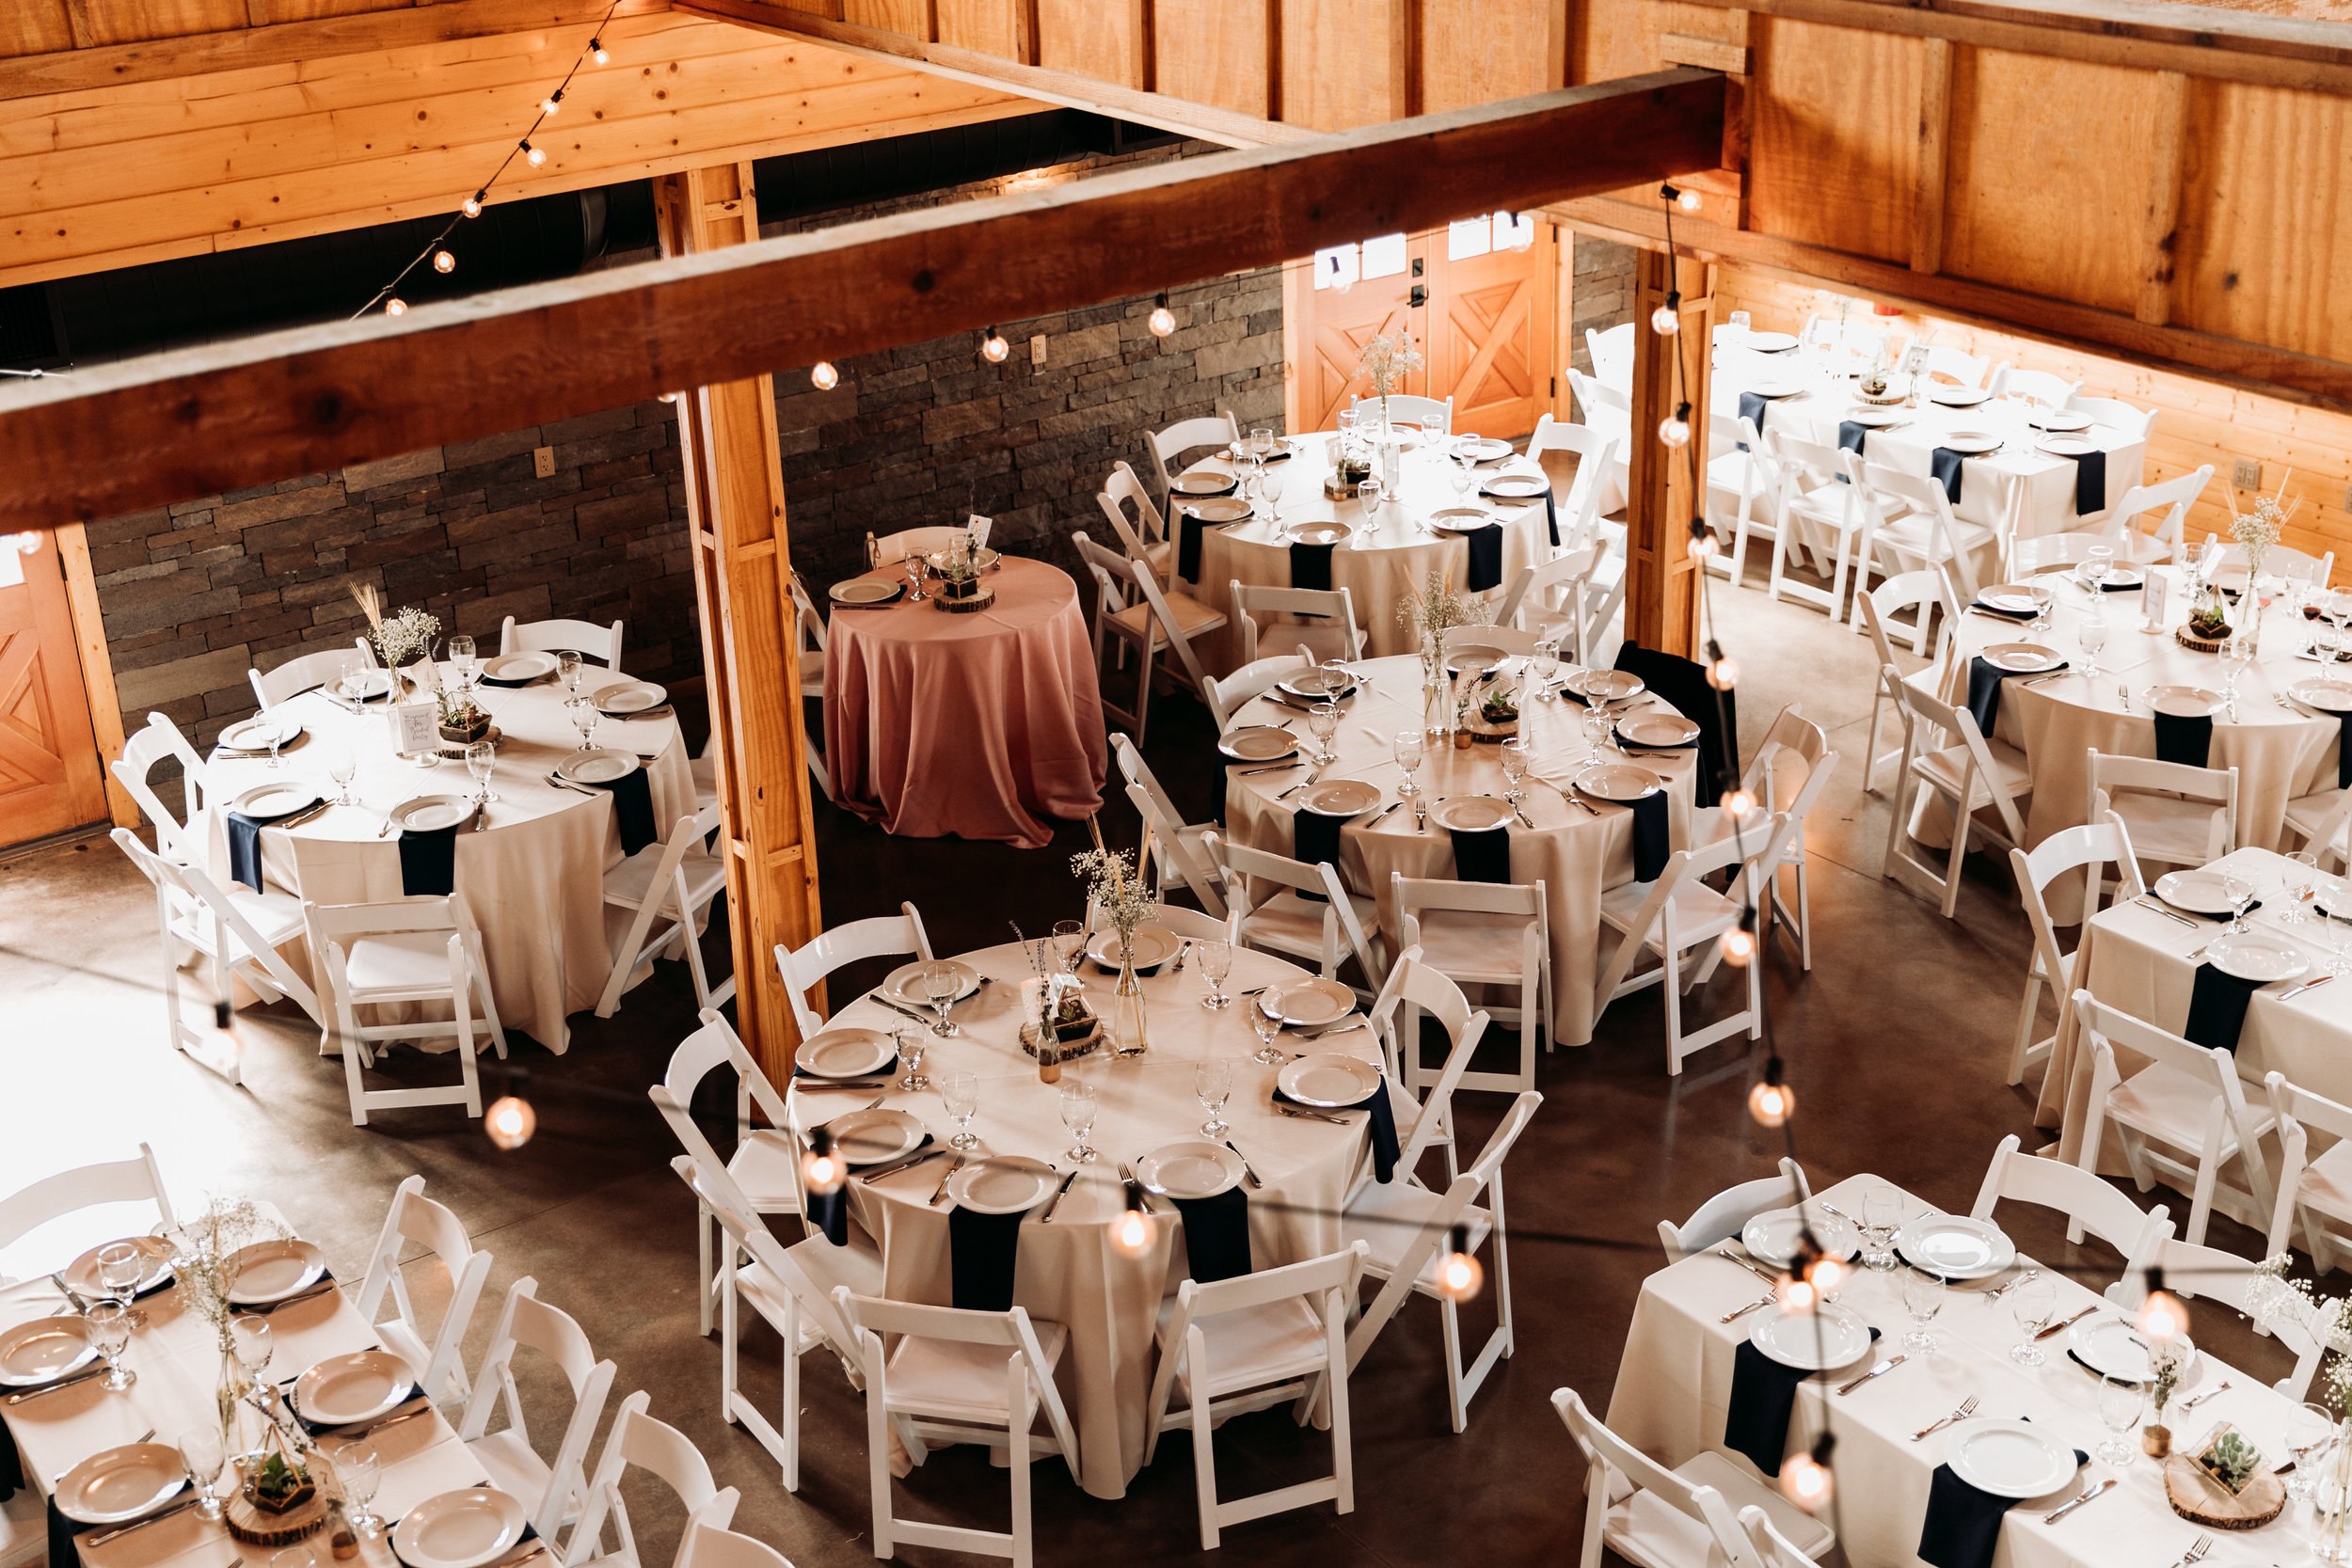 Outdoor ceremony, outdoor cocktail hour and indoor reception. pc: Sydney Renee Photography